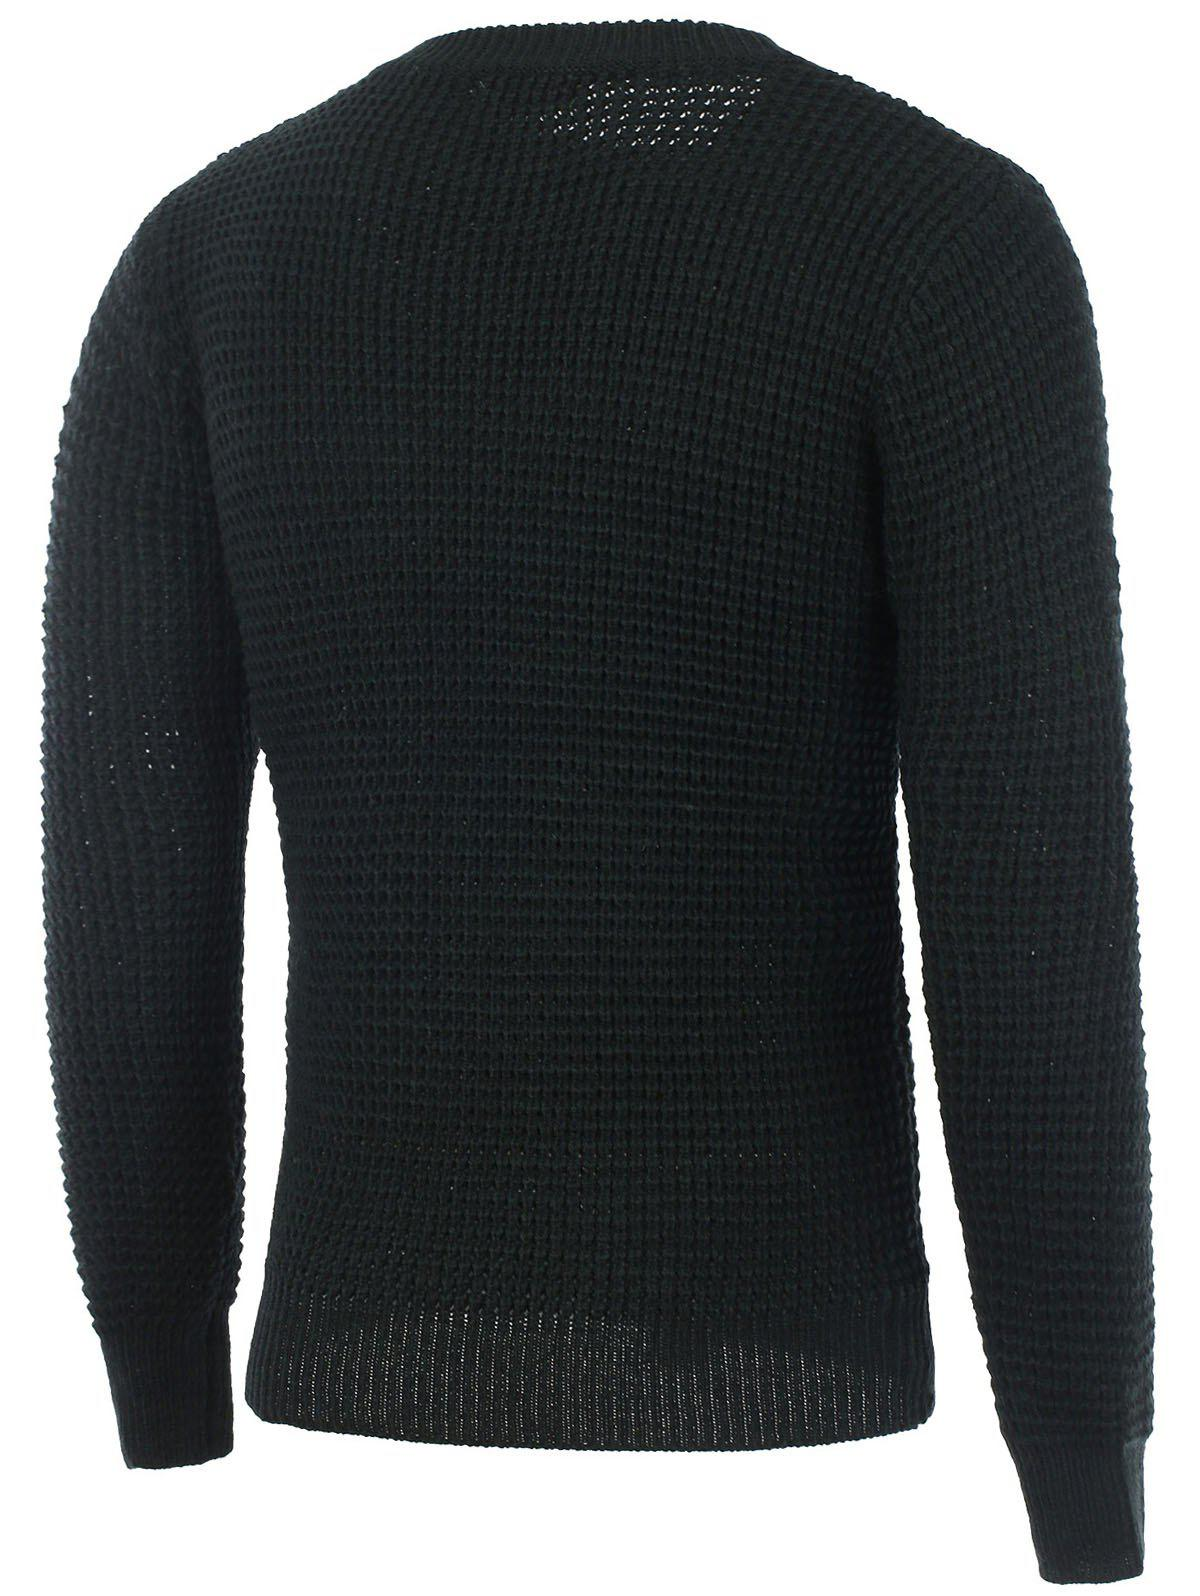 Texture Knitted Crew Neck Graphic Sweater - BLACK L